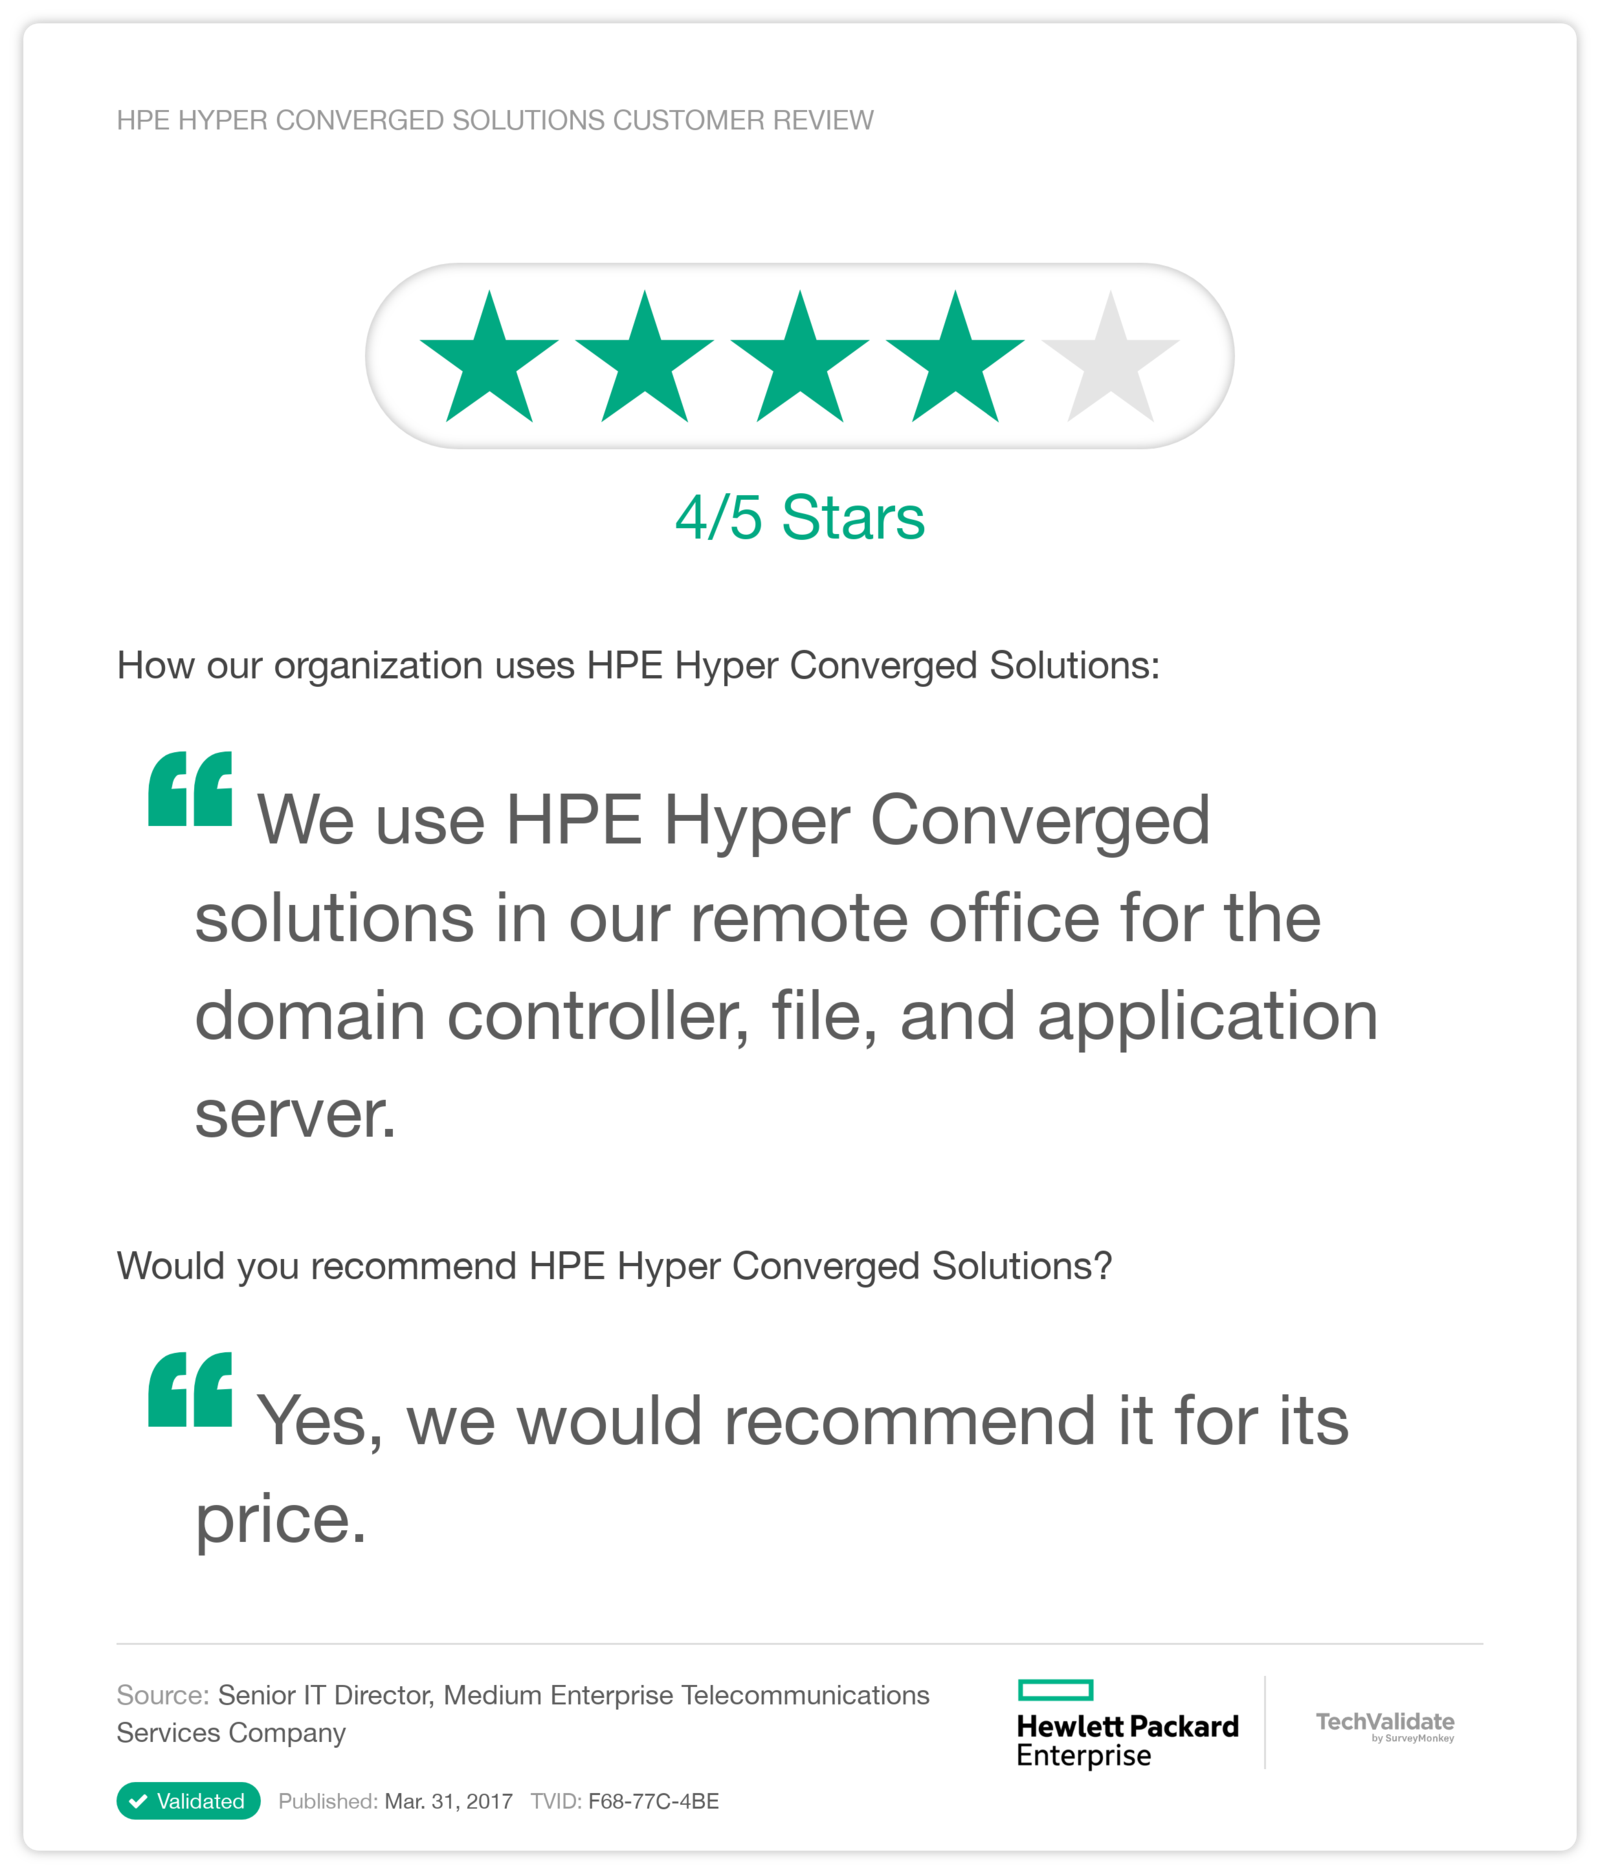 HPE Hyper Converged Solutions Customer Review